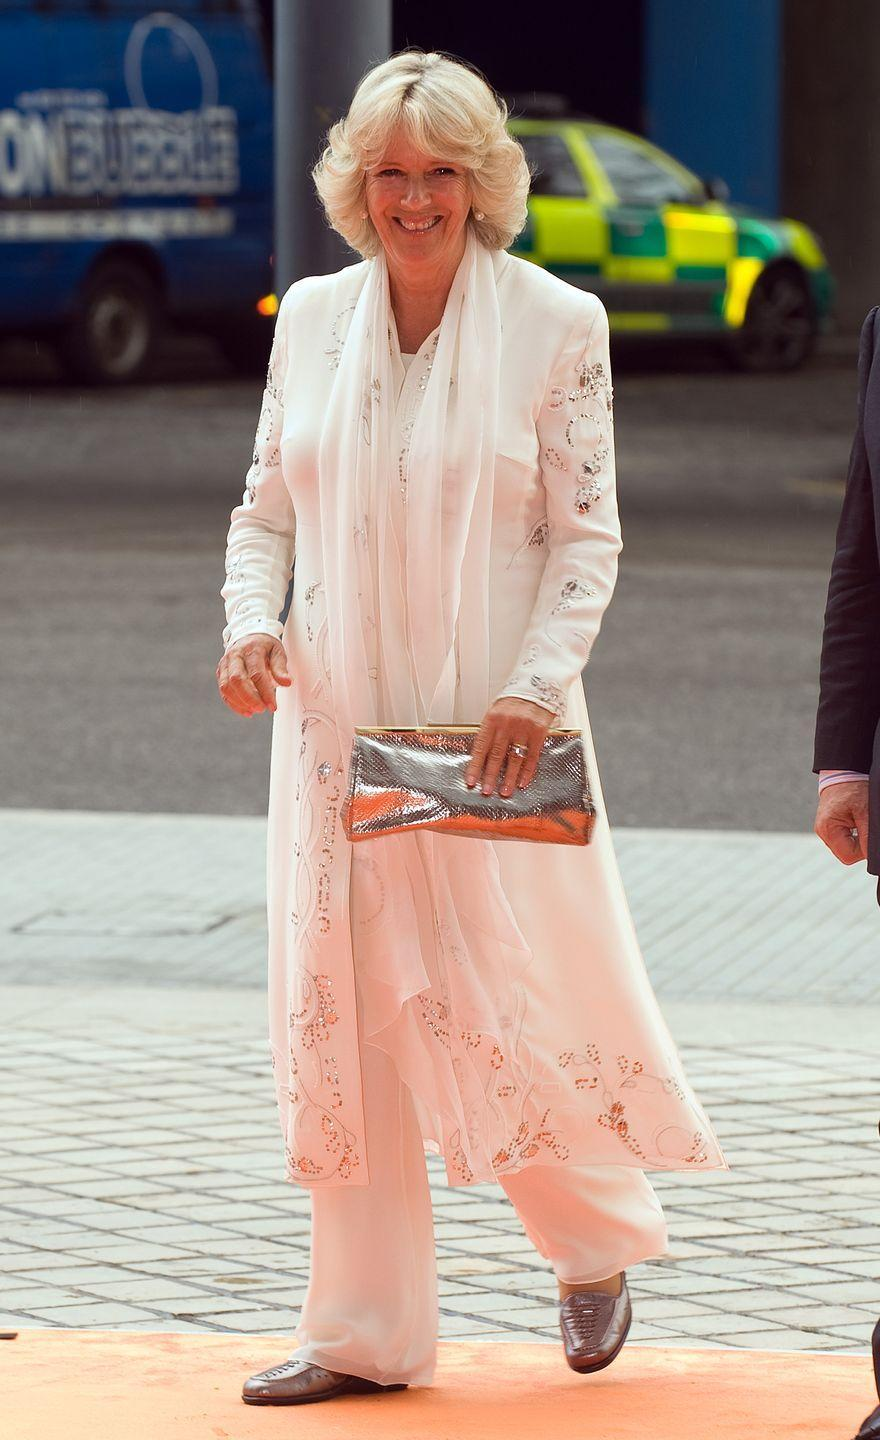 <p>On a day out in London, Camilla looked breezy in this flowing white coatdress with floral embroidery and matching white trousers. </p>